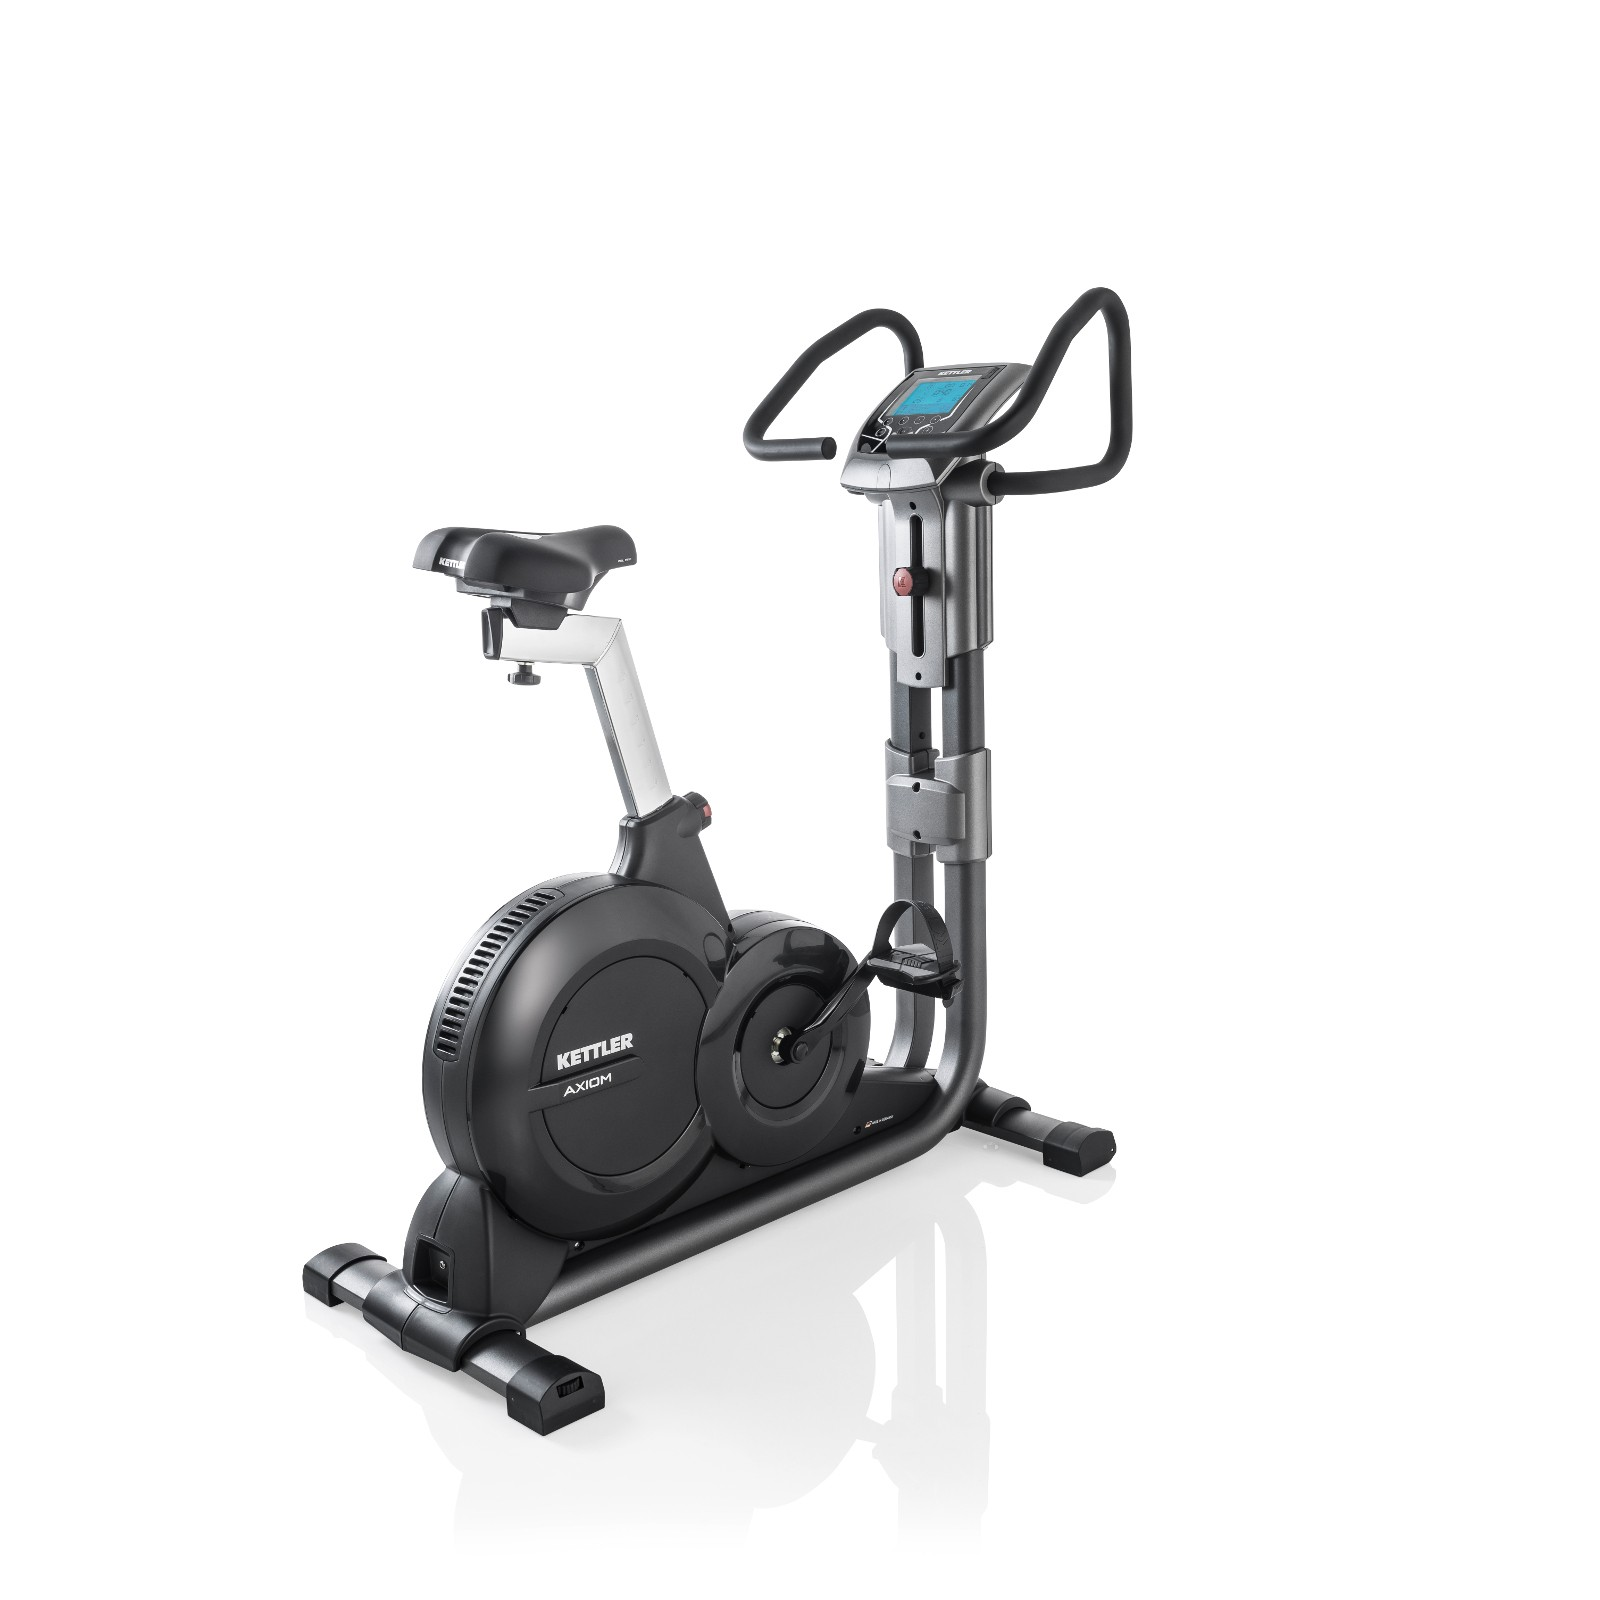 Kettler Fitness Kettler Exercise Bike Axiom